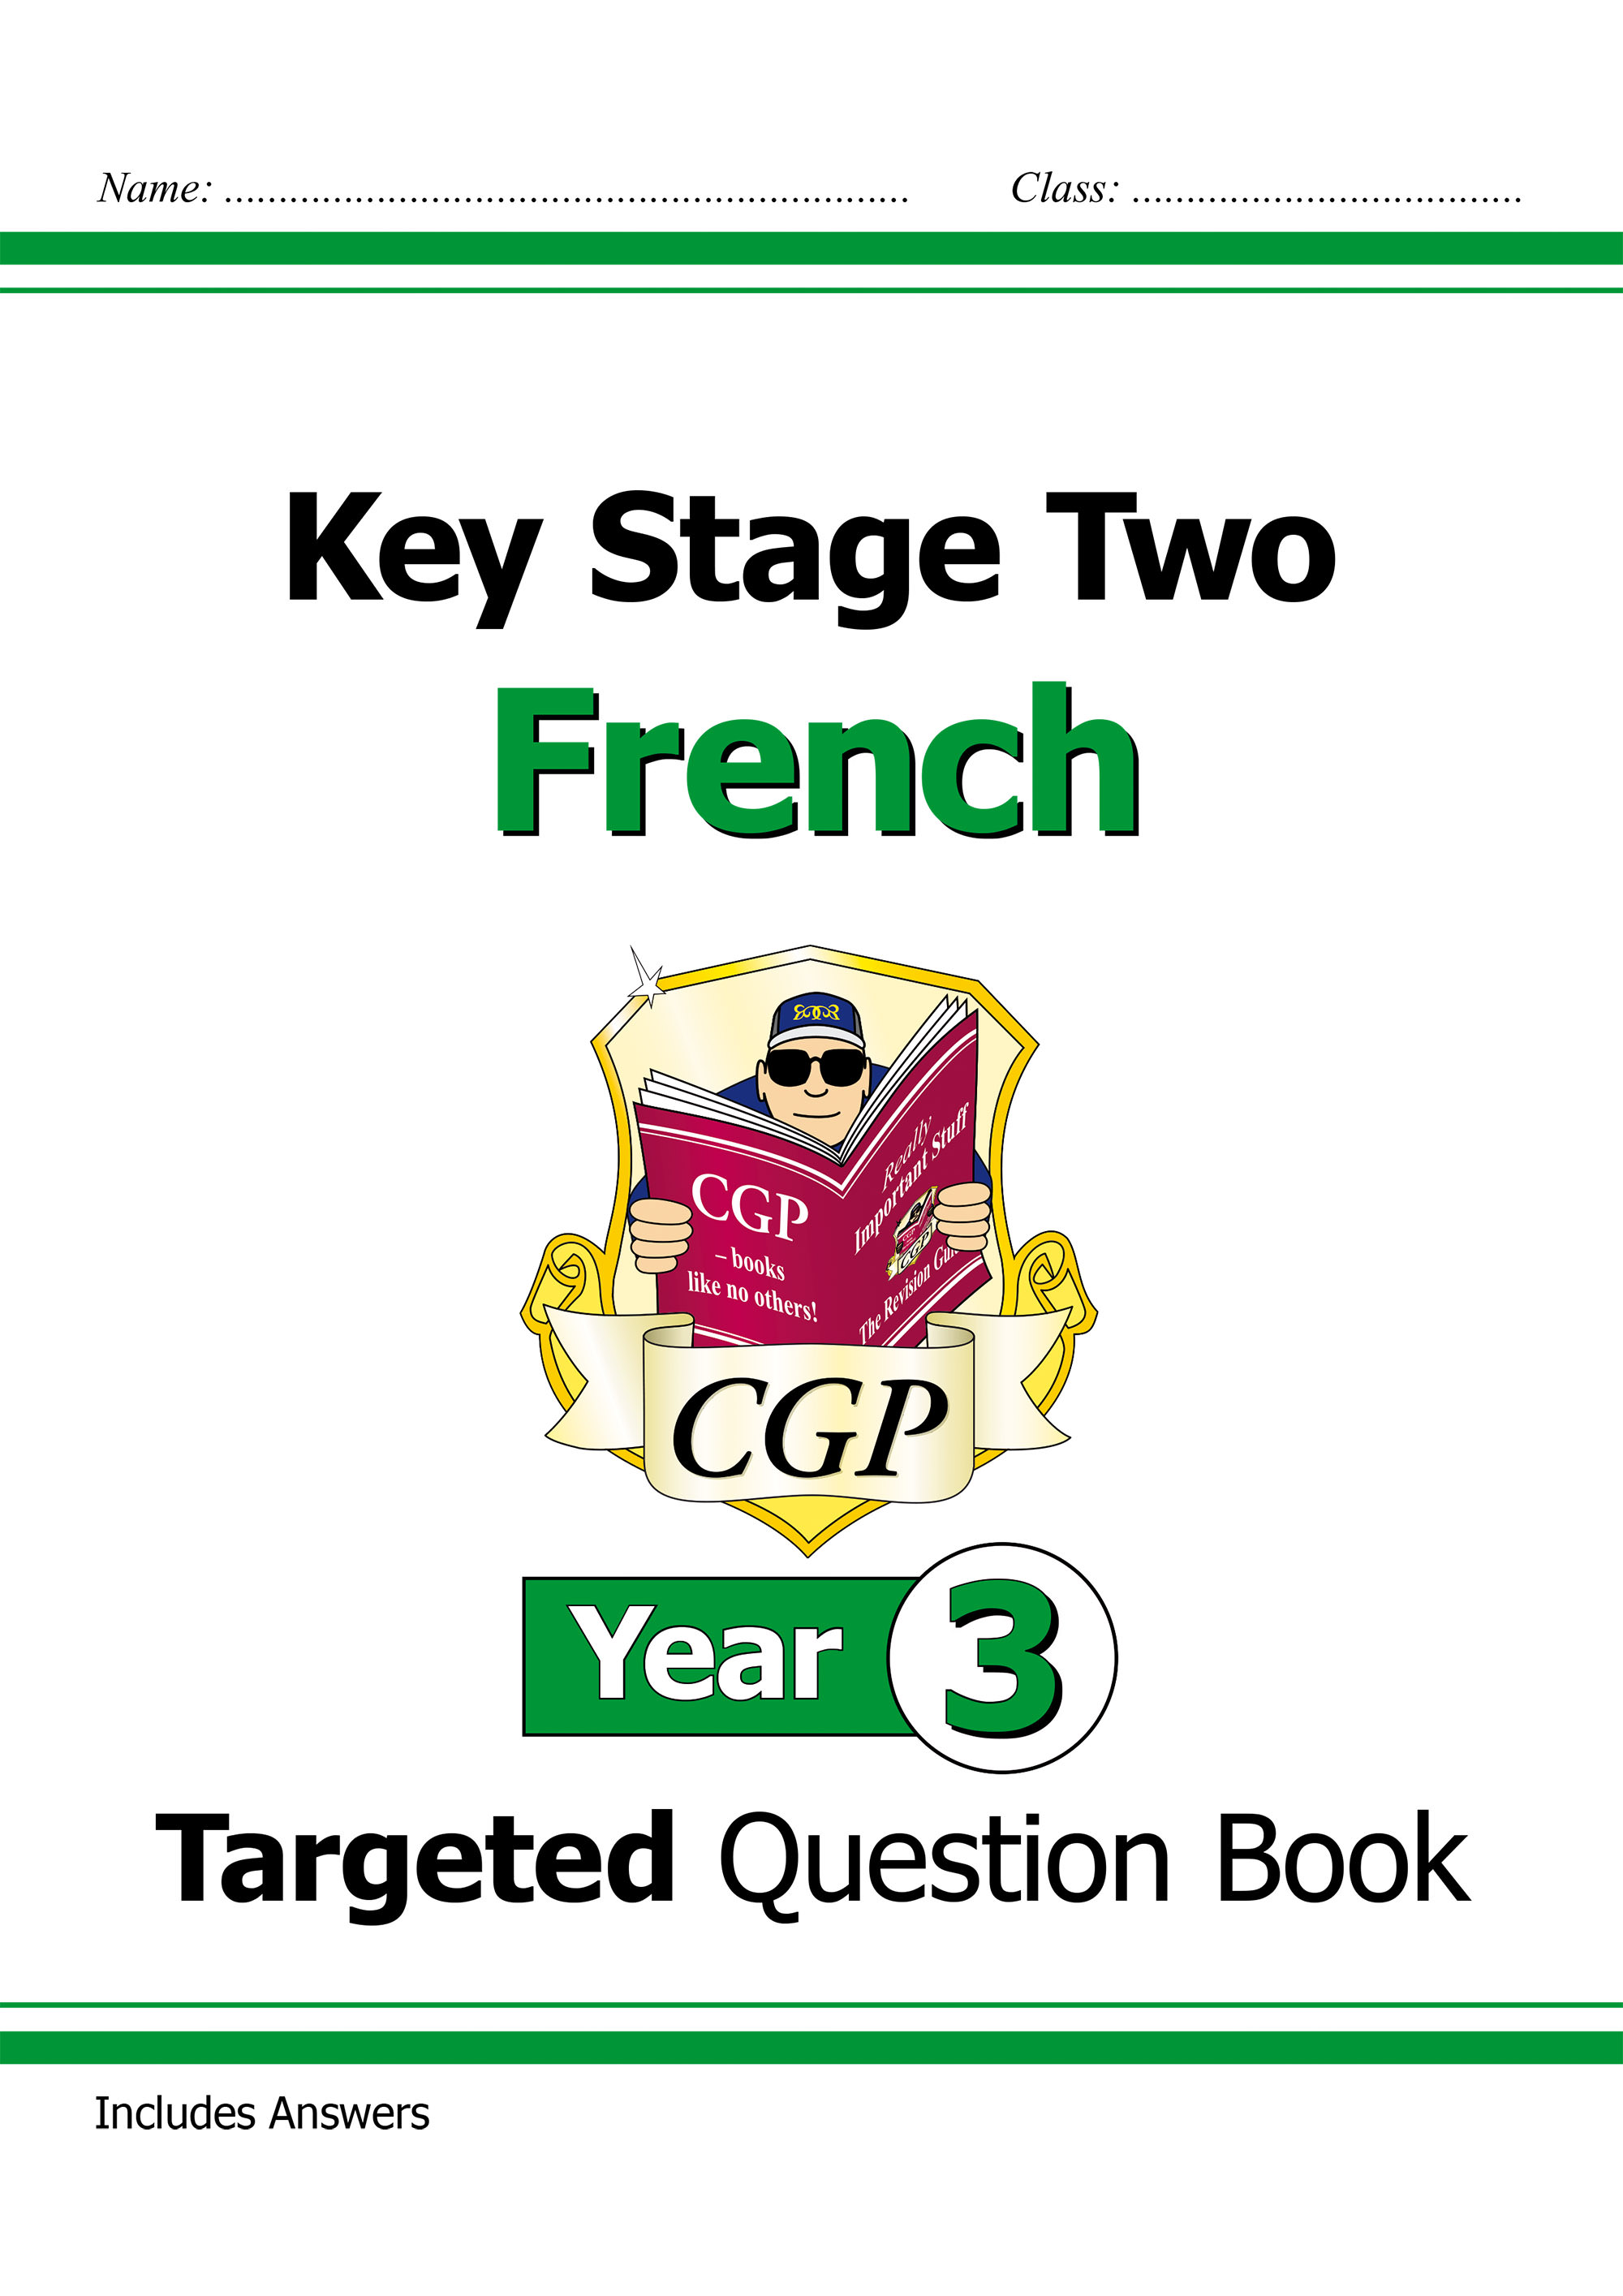 F3Q21DK - New KS2 French Targeted Question Book - Year 3